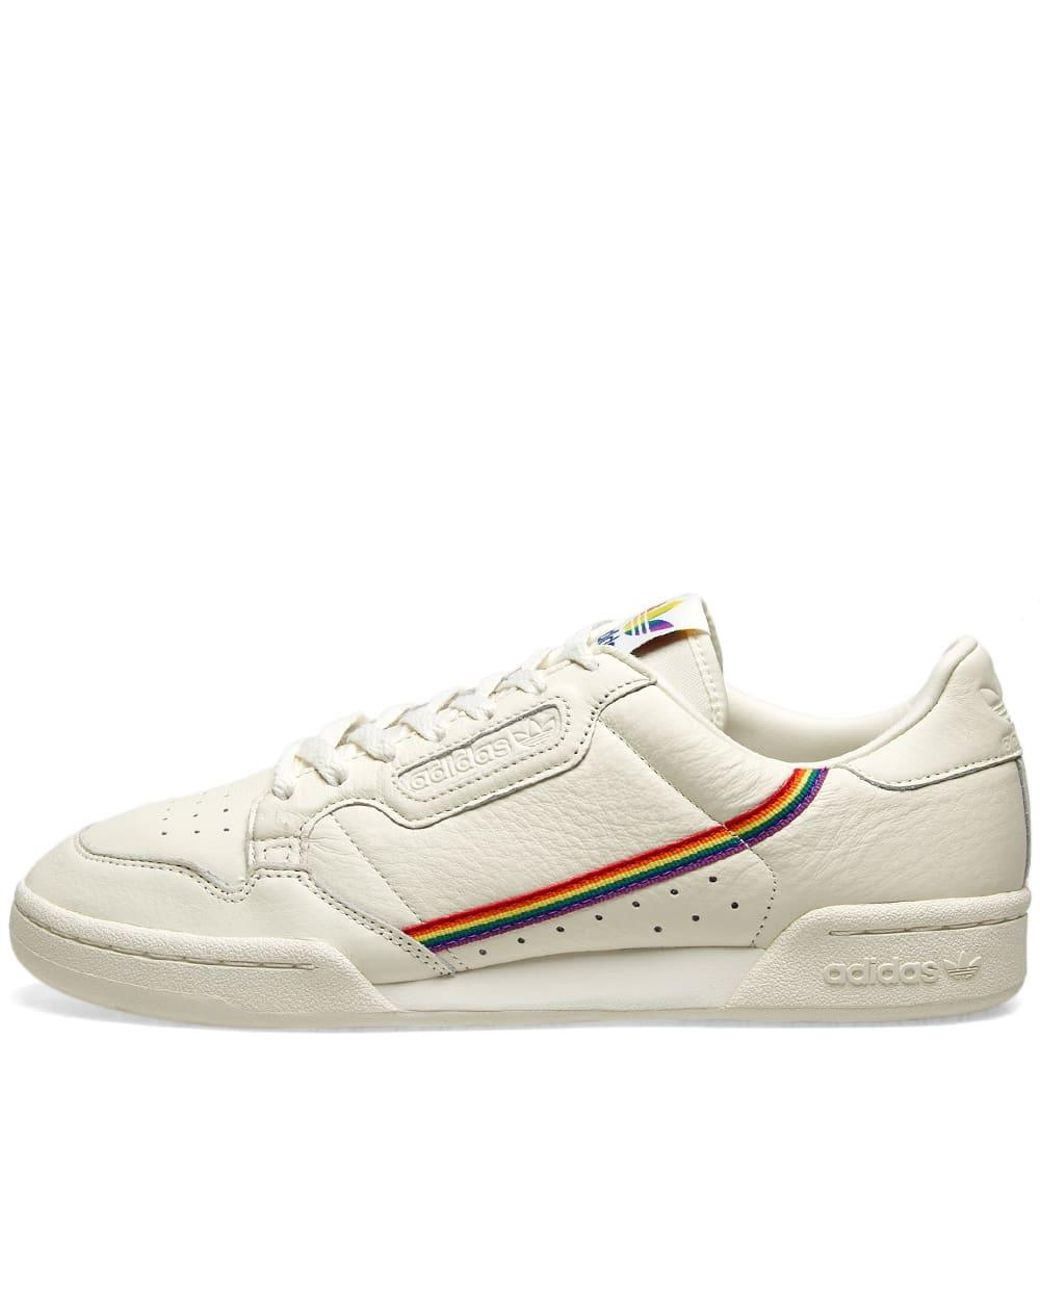 adidas Continental 80 Pride in White for Men - Lyst